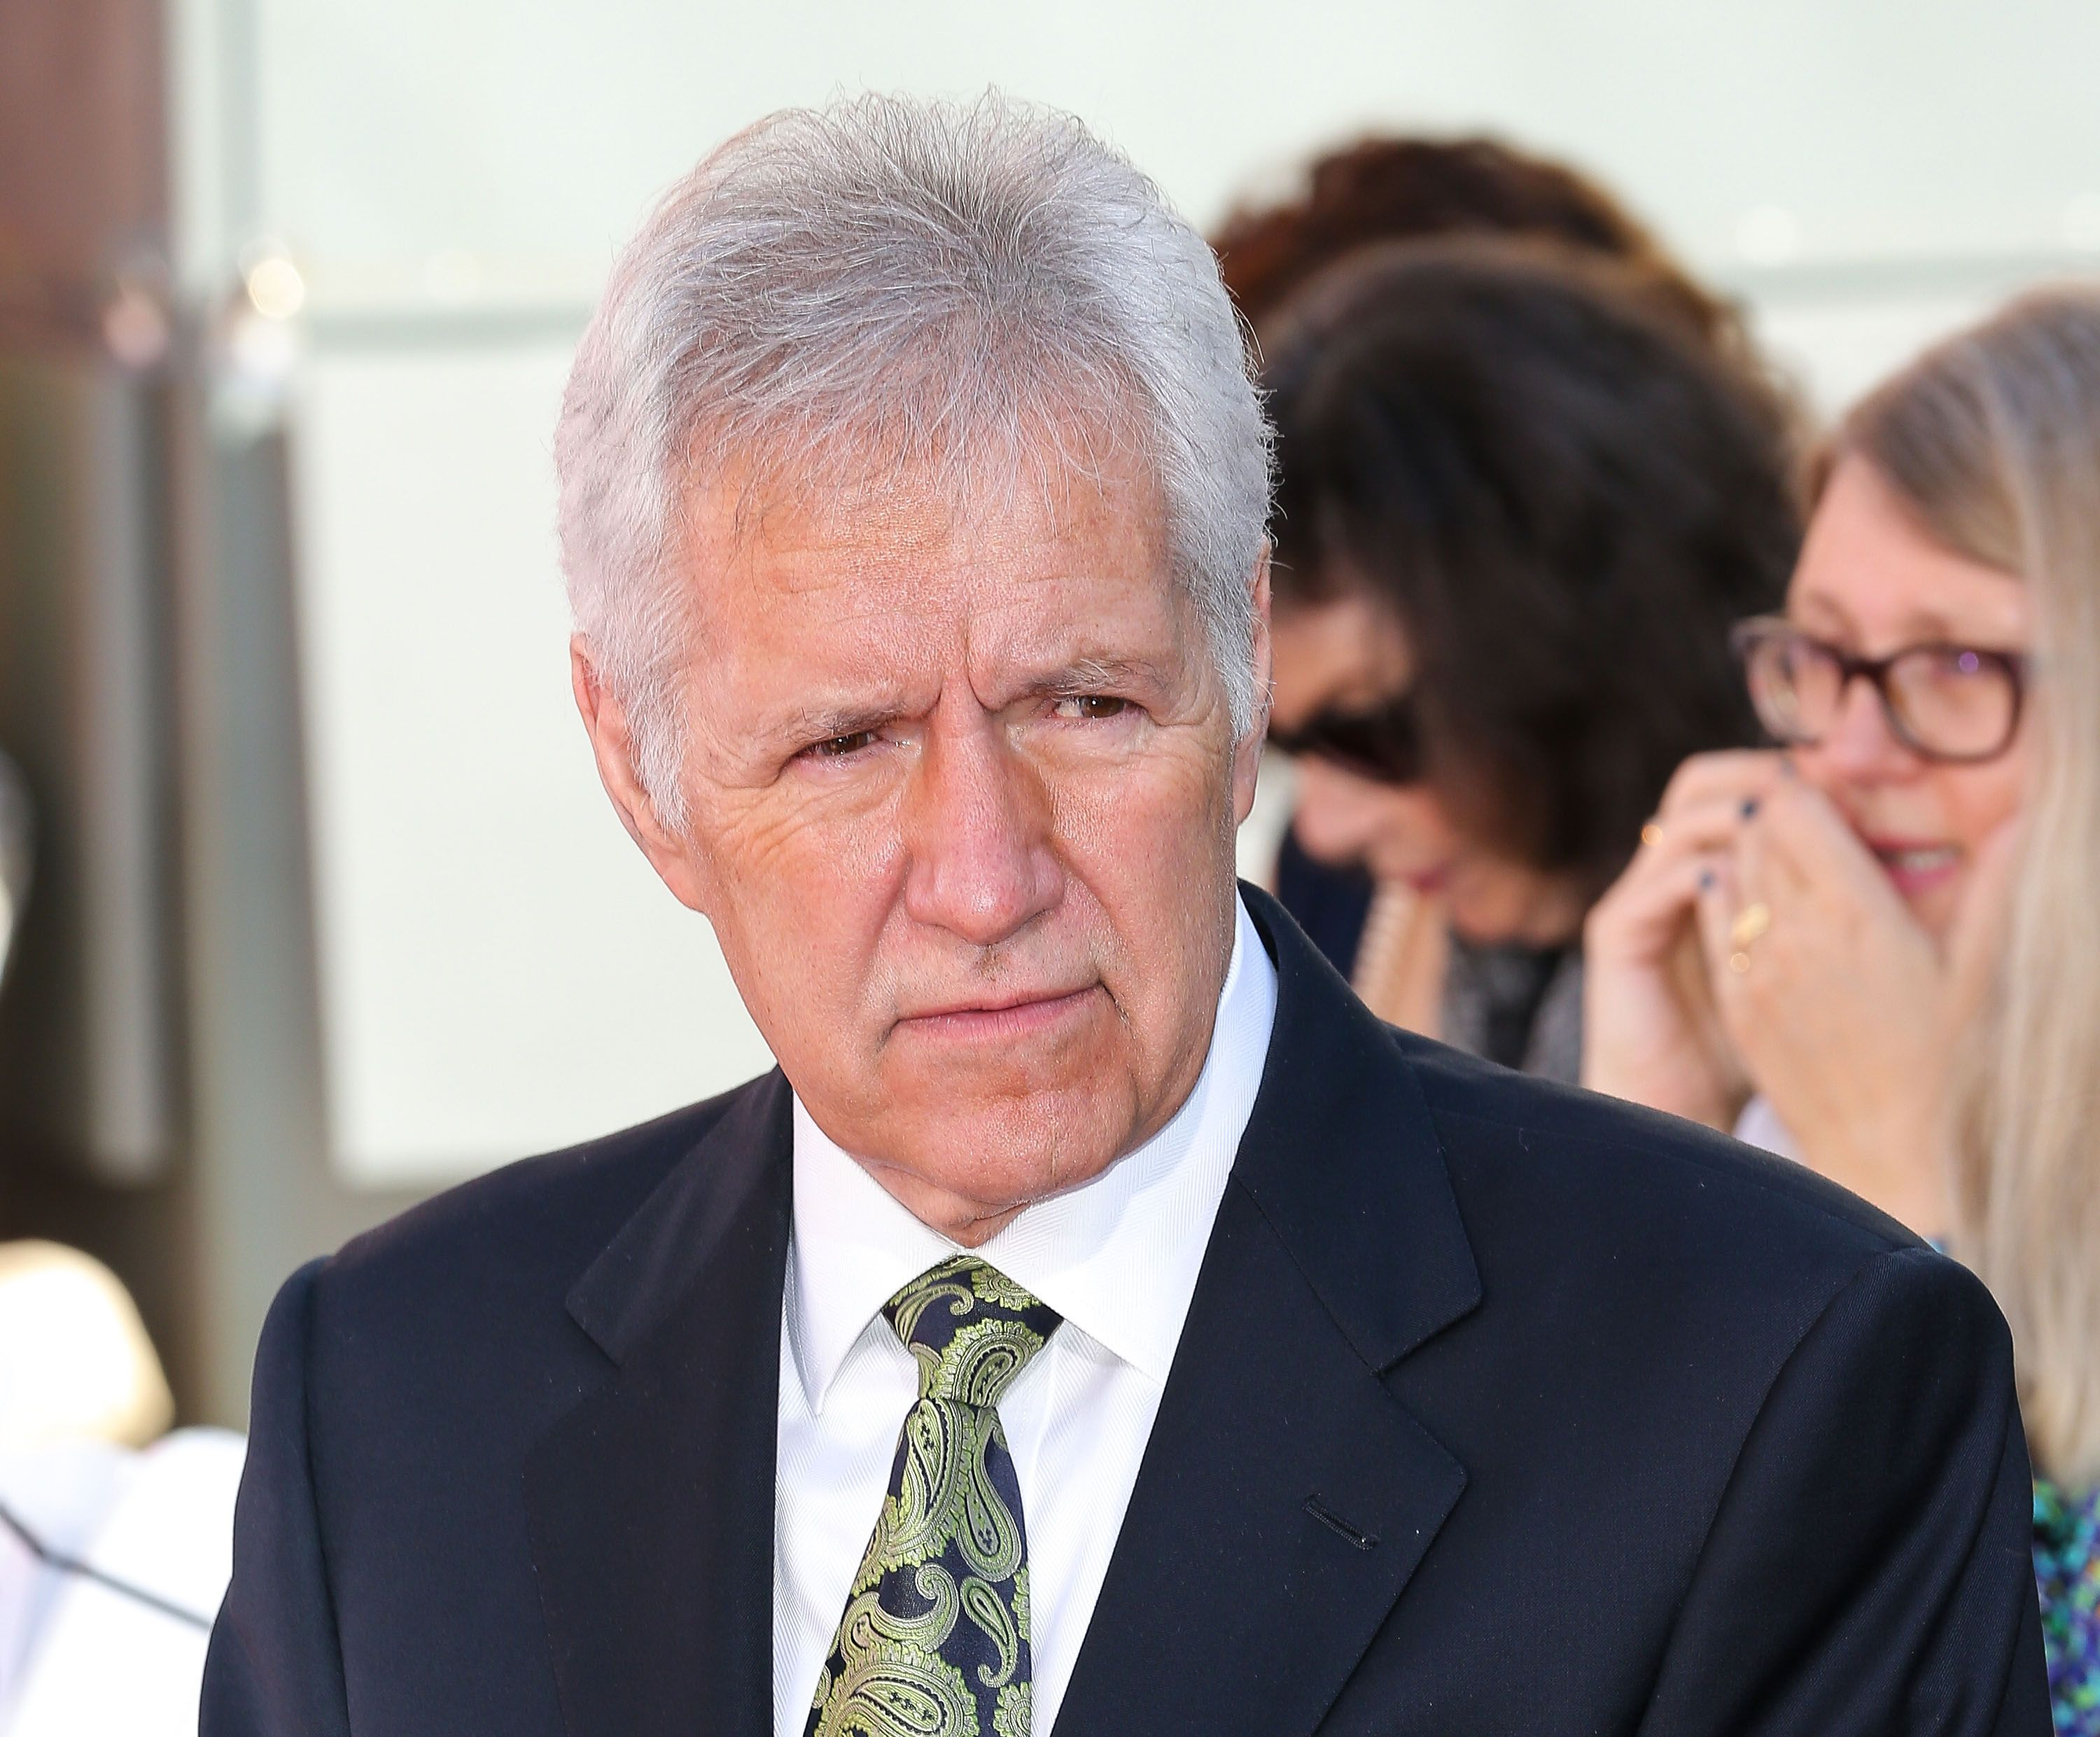 Alex Trebek at the TCM hand and footprint ceremony of Christopher Plummer on March 27, 2015, in Hollywood, California | Photo: Imeh Akpanudosen/Getty Images